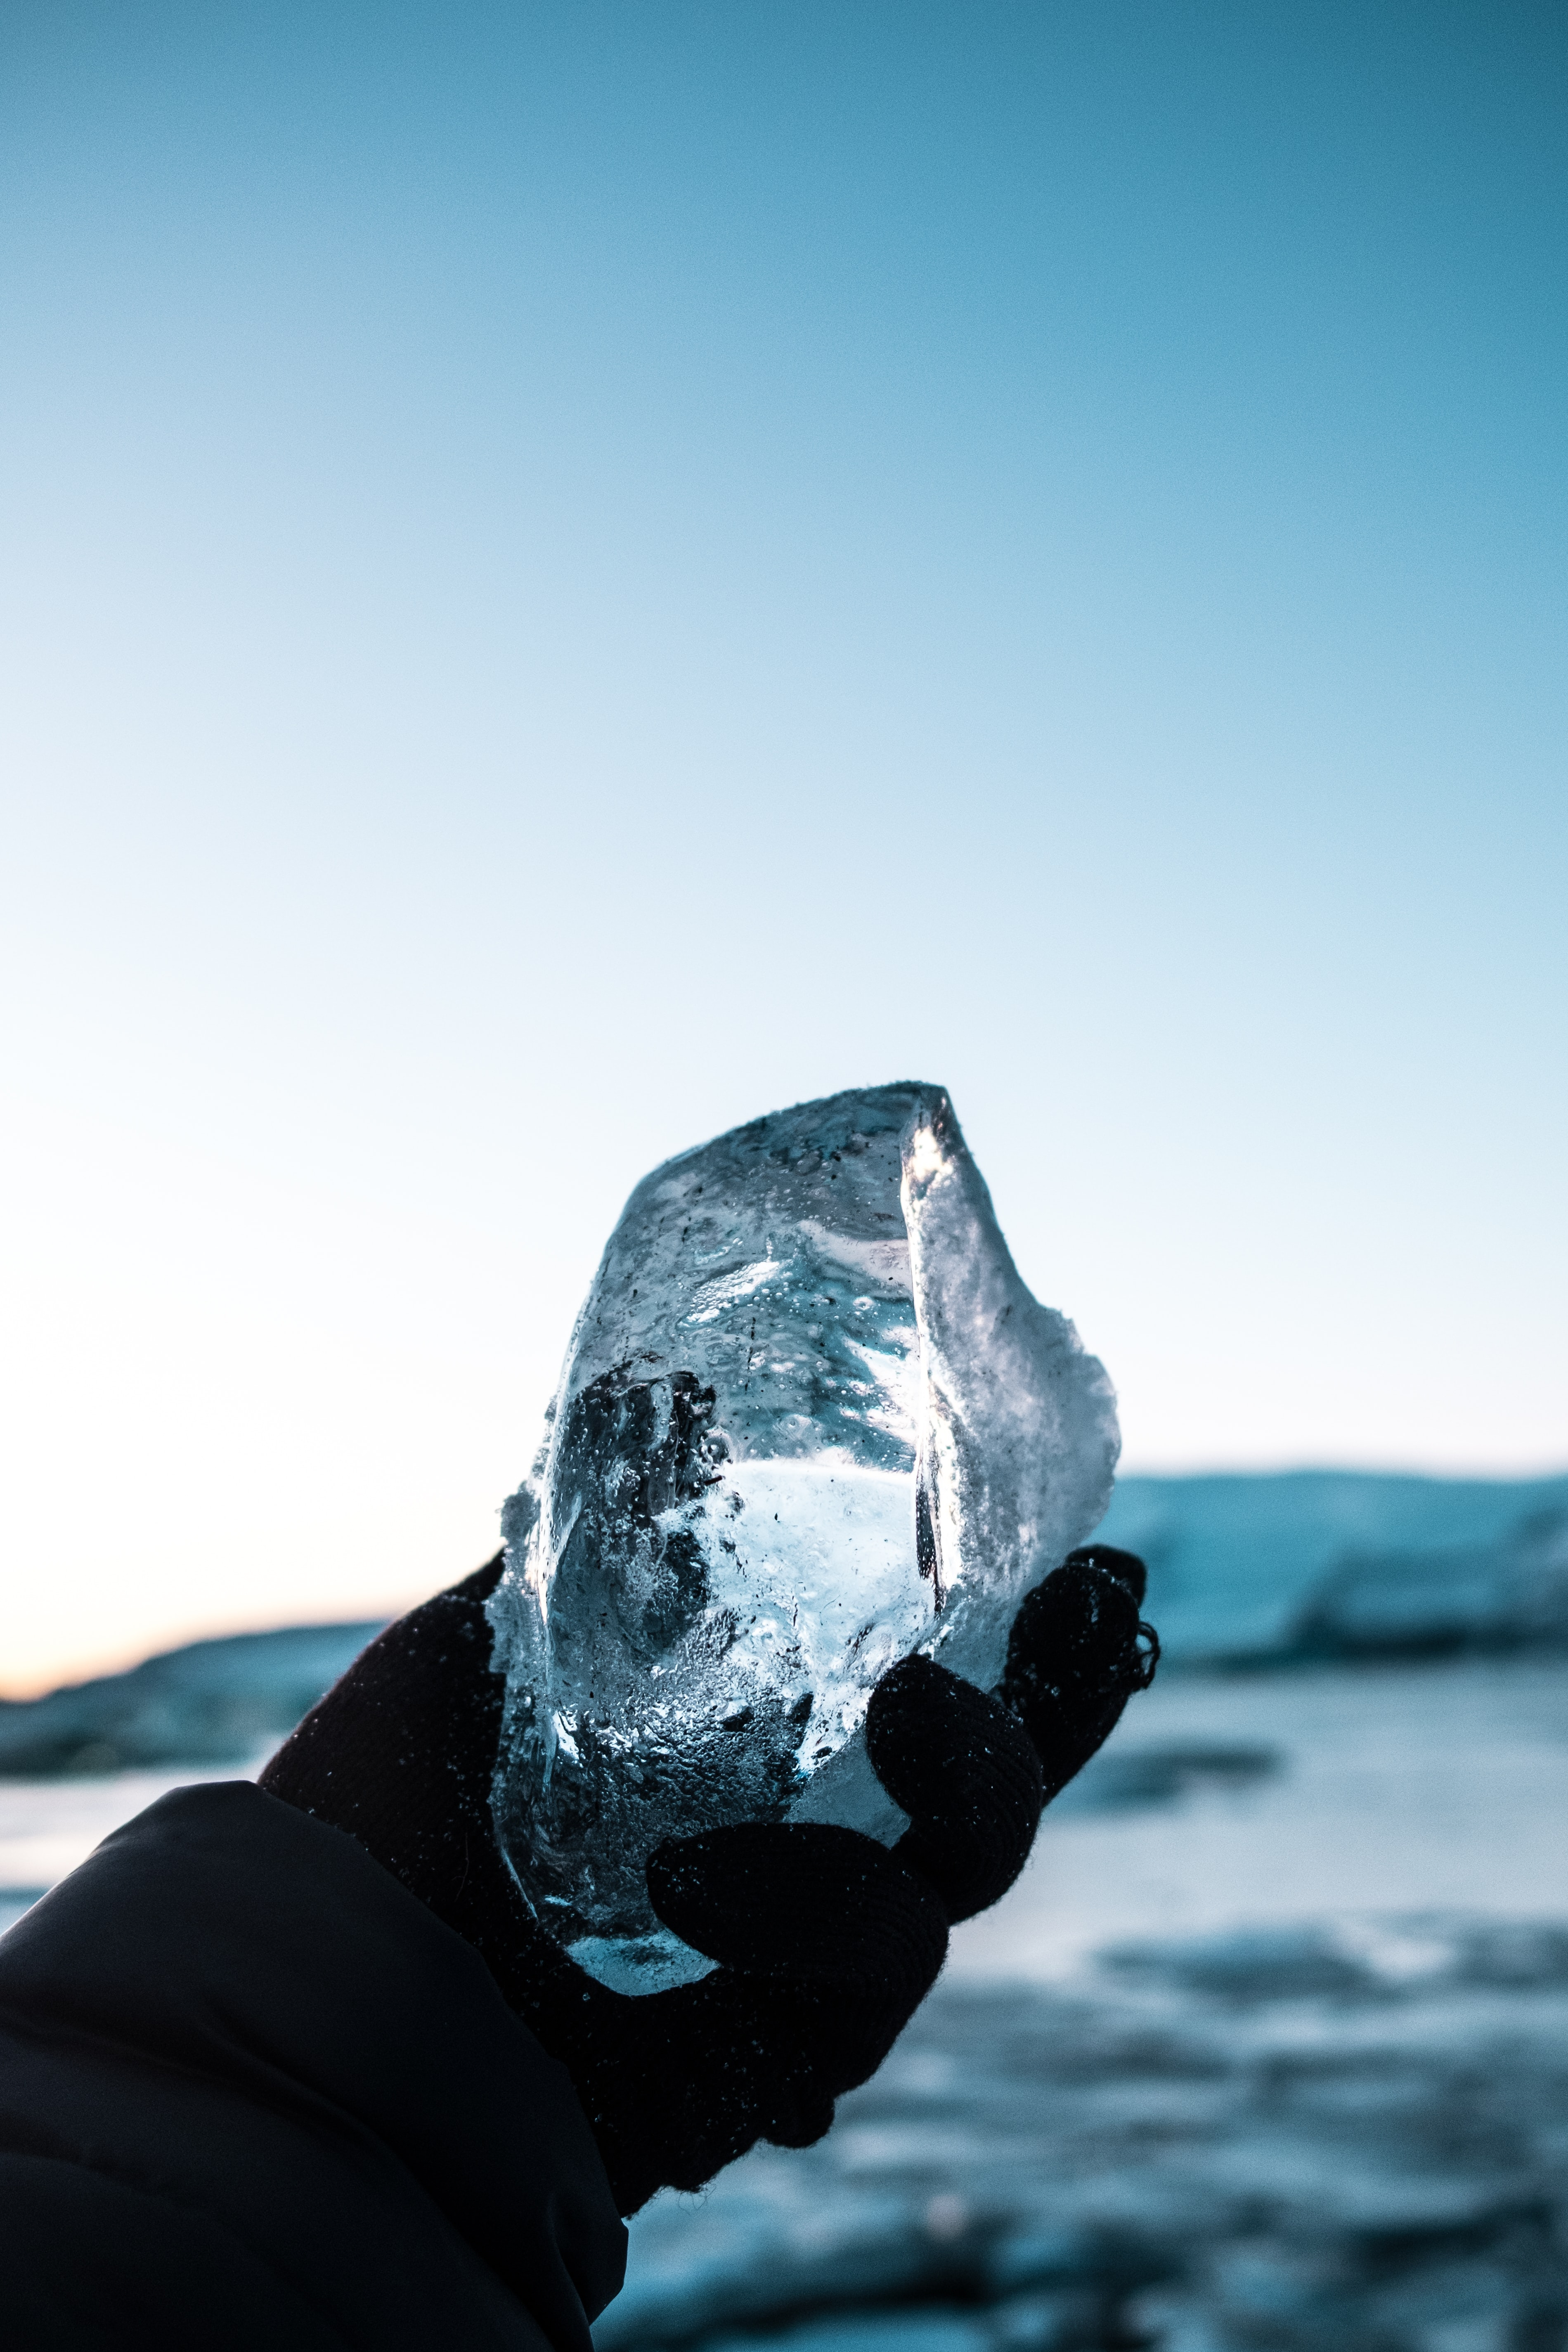 person holding block of ice